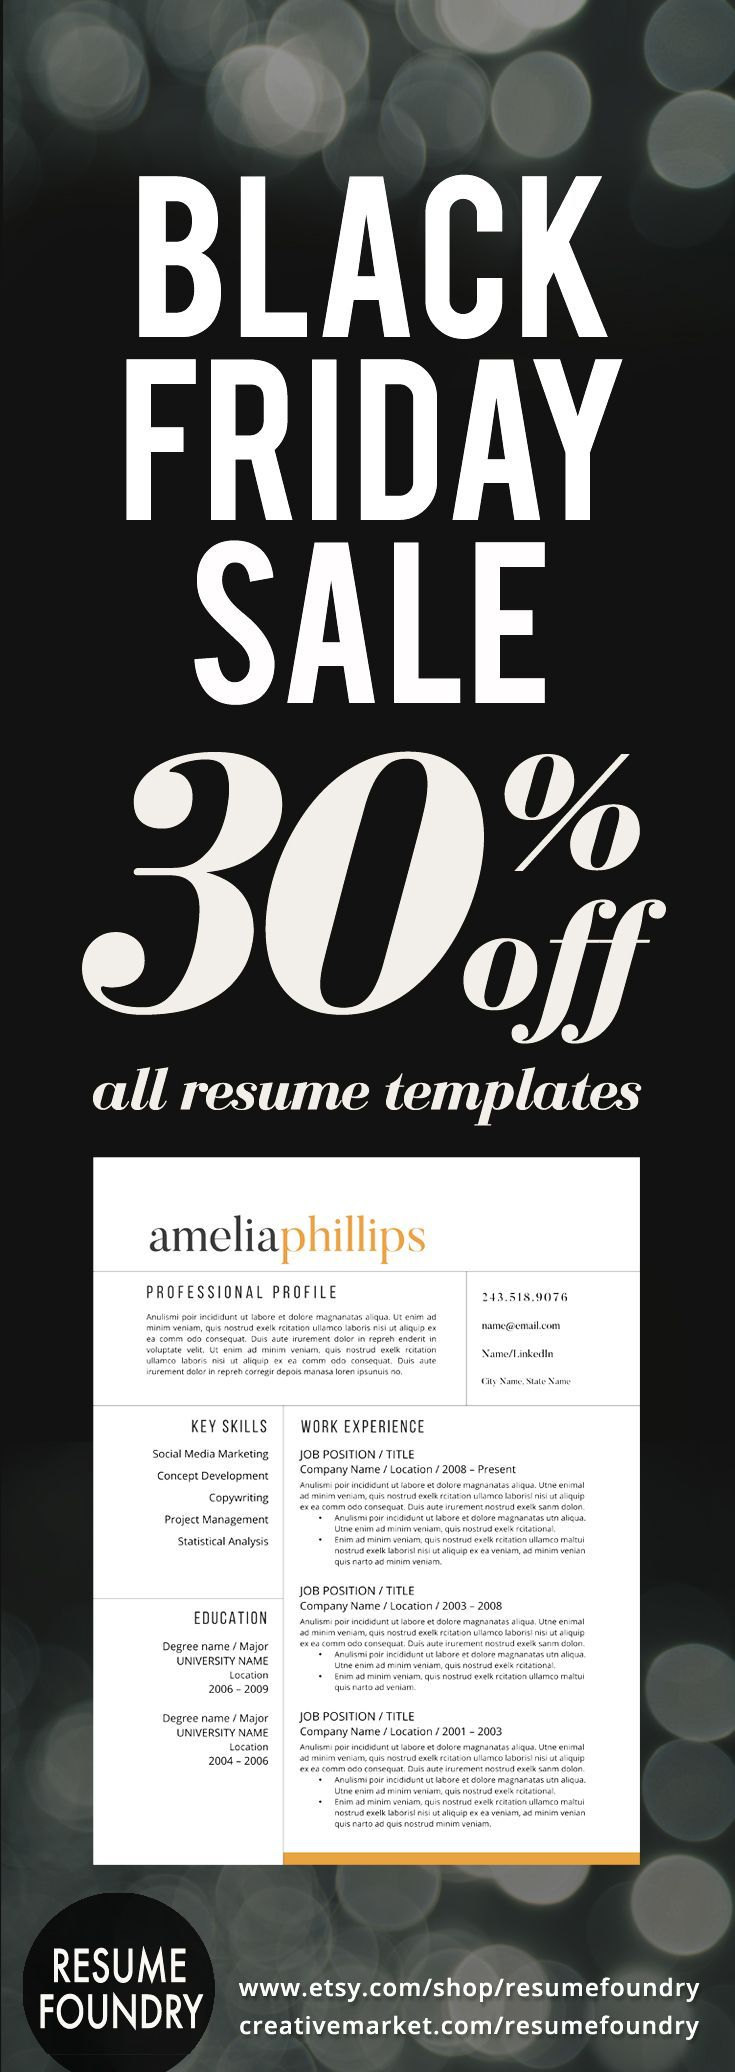 Black Friday Sale for Resume Templates Choose